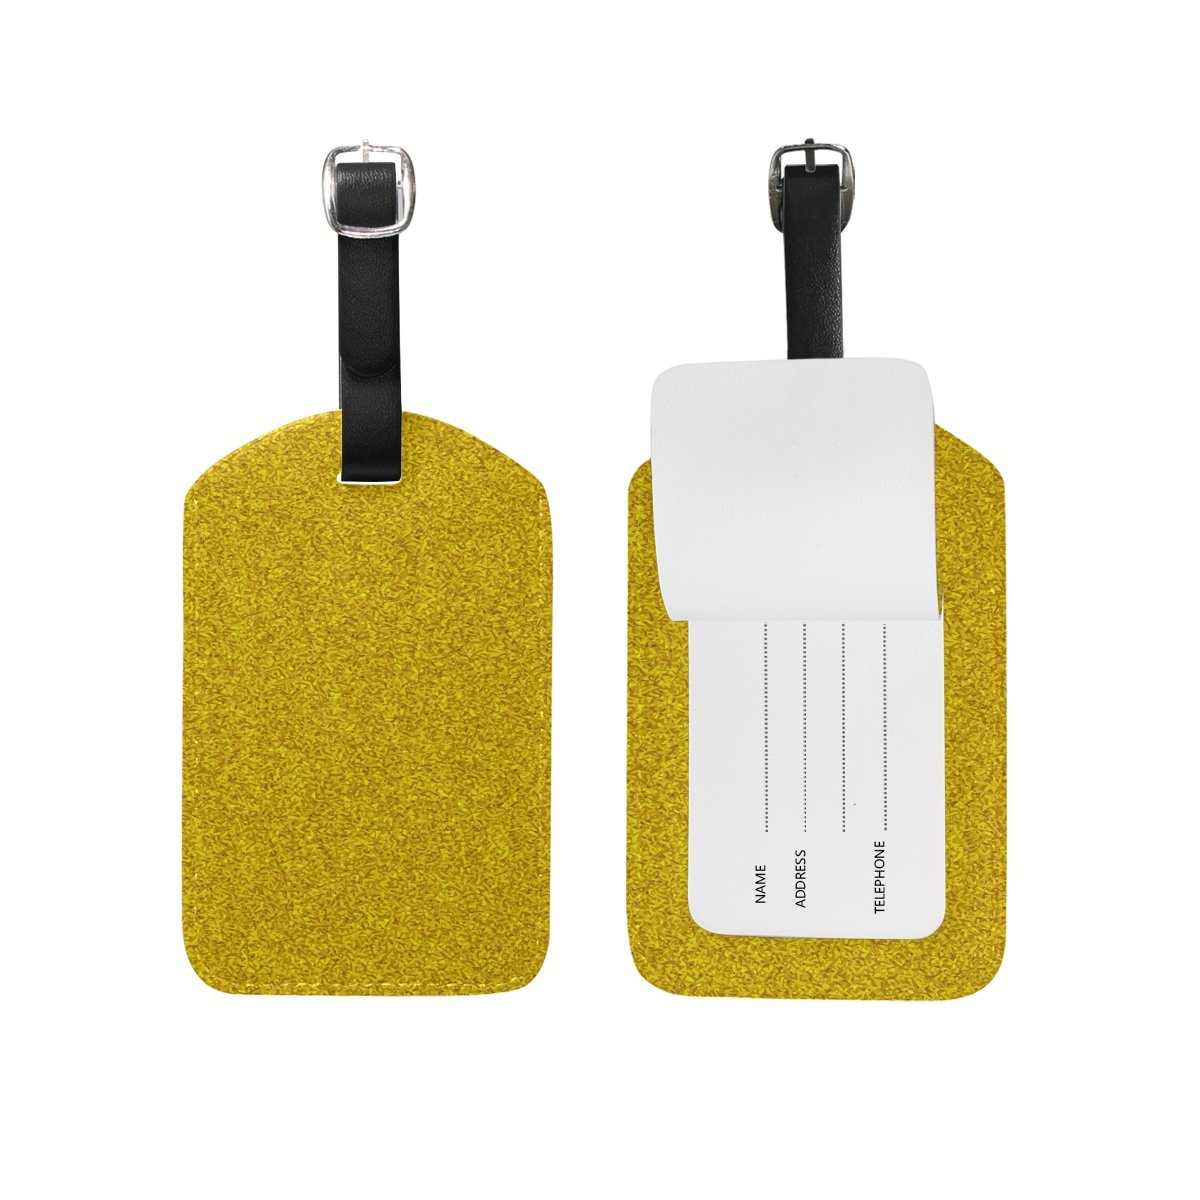 Hipster Fine Powders Travel Leather Luggage Baggage Suitcases Tags Label Set of 2